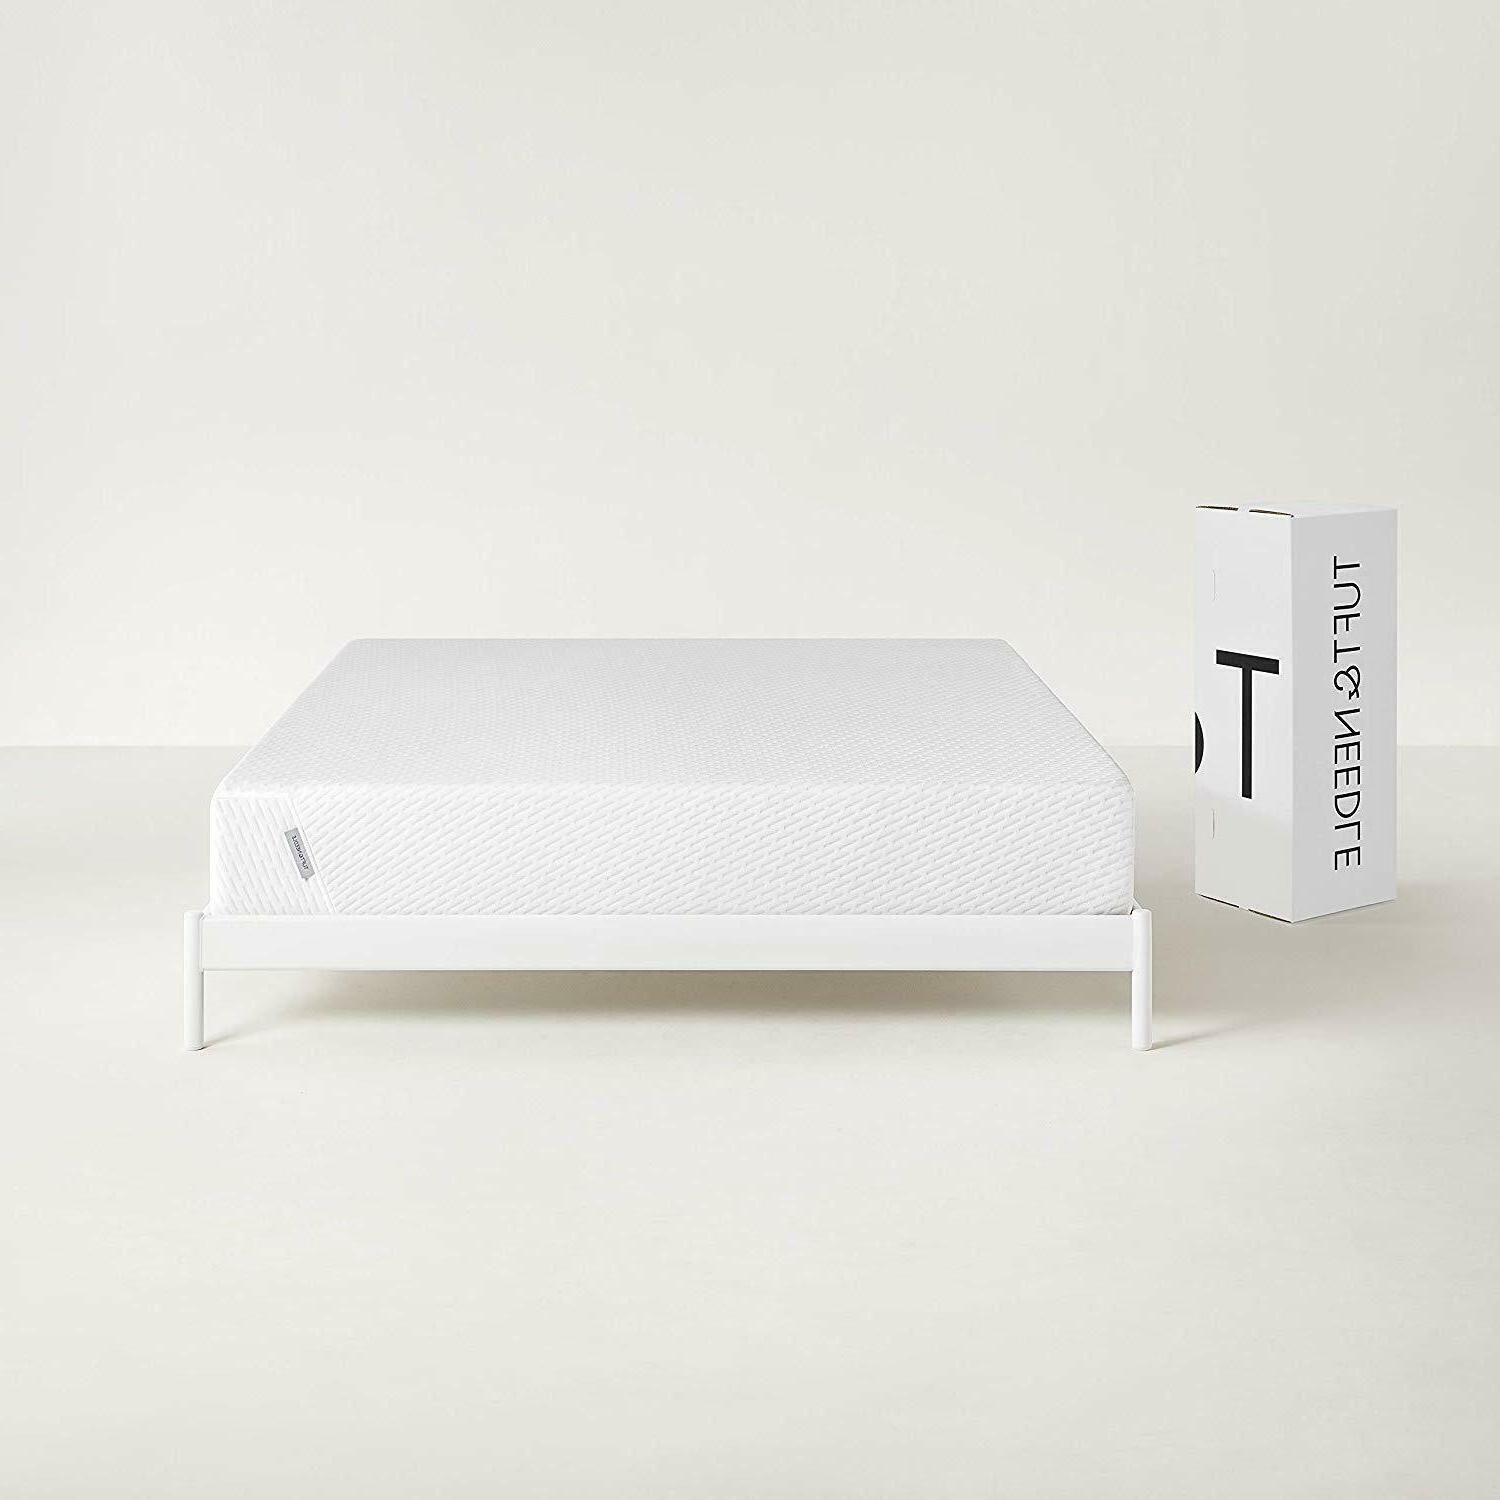 Tuft Mattress, Bed in Box, Foam